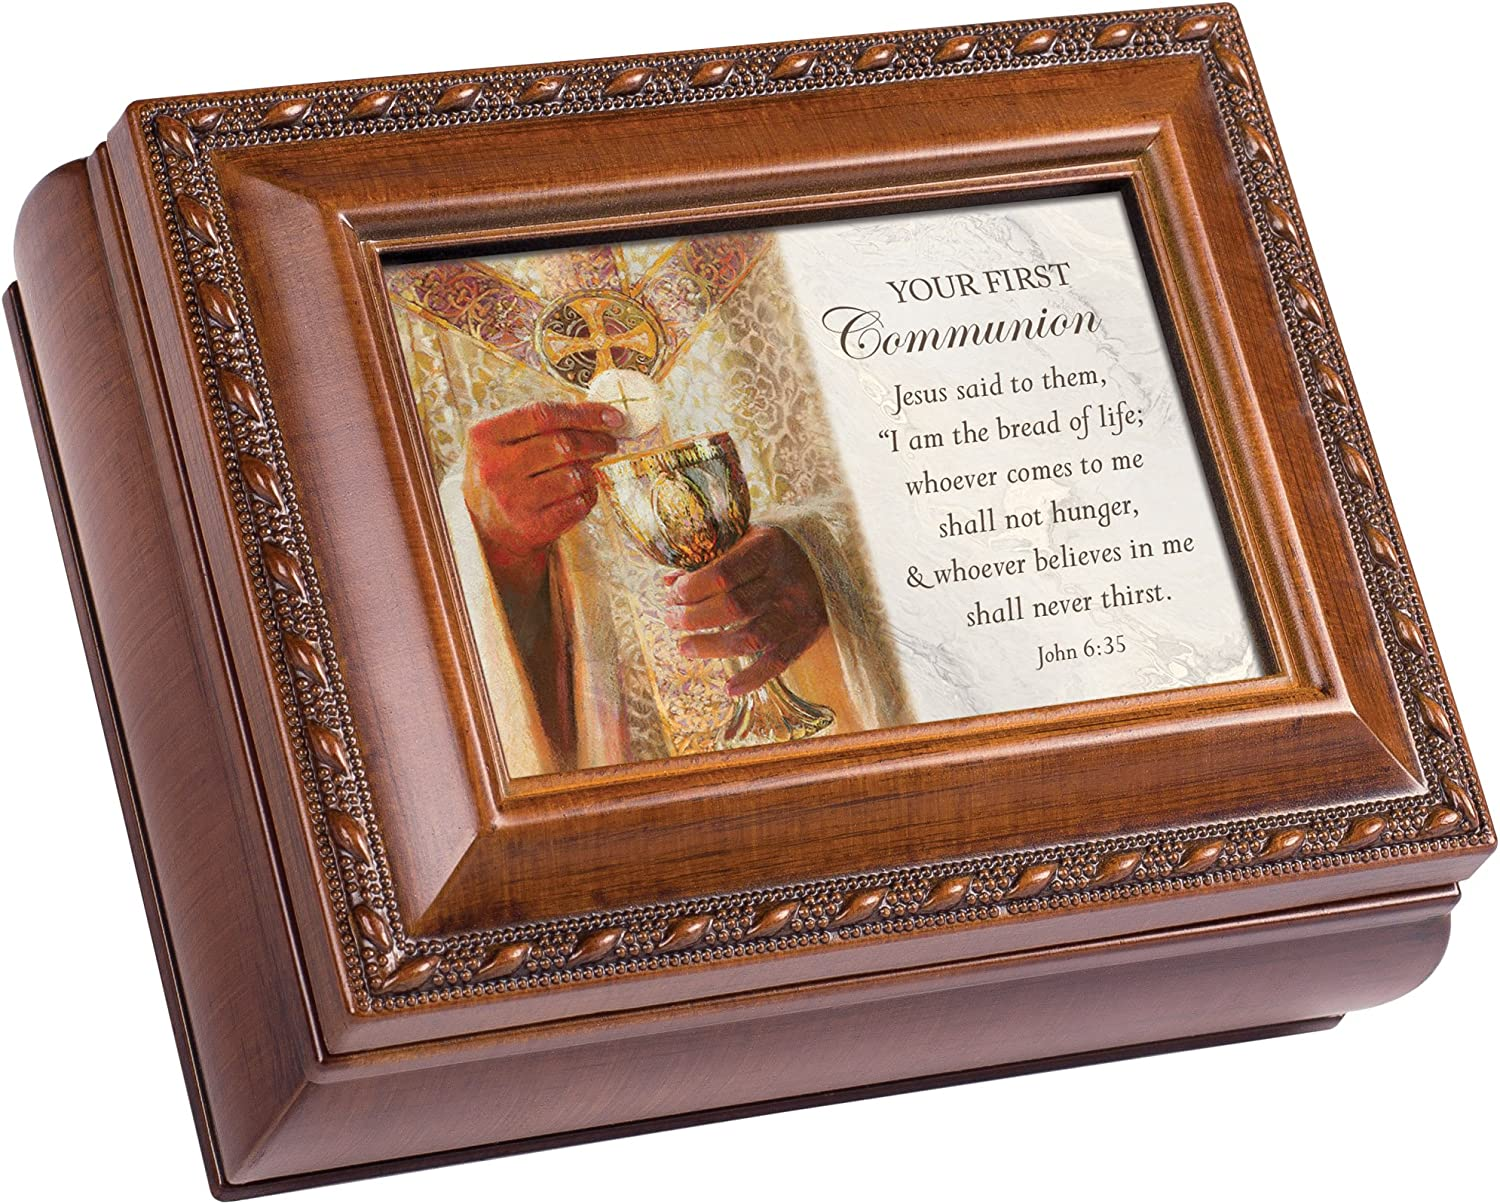 Cottage Garden Your First Communion Brown Rope Trim 4.5 x 3.5 Tiny Square Jewelry Keepsake Box